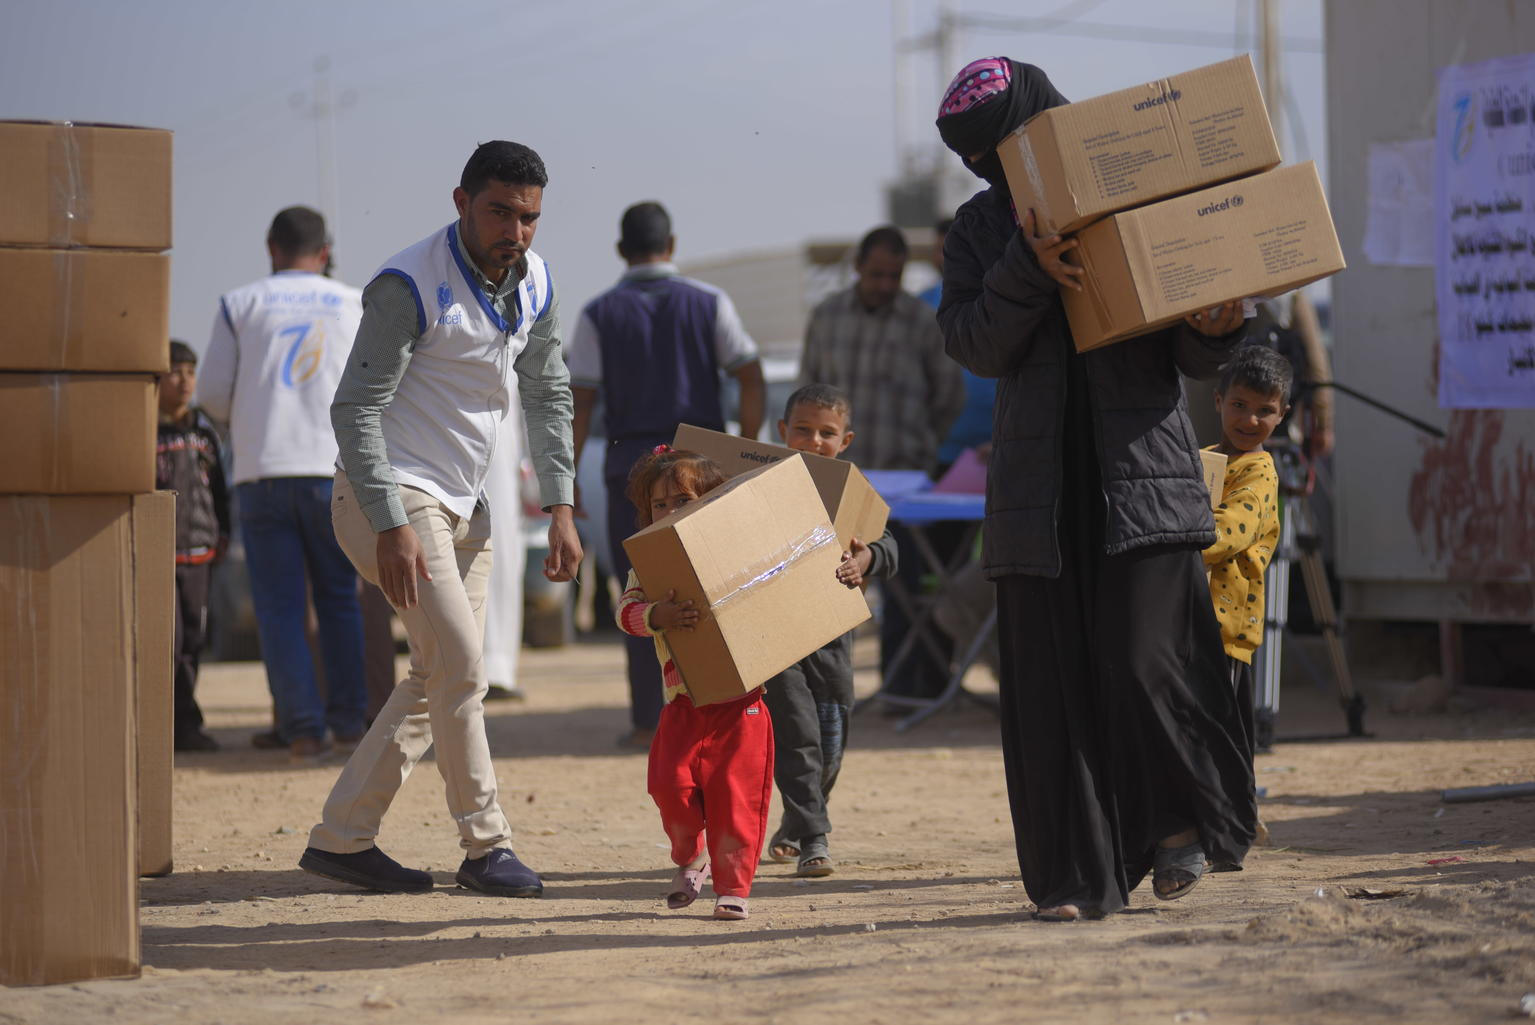 A women and some children carry boxes as a UNICEF volunteer looks on.